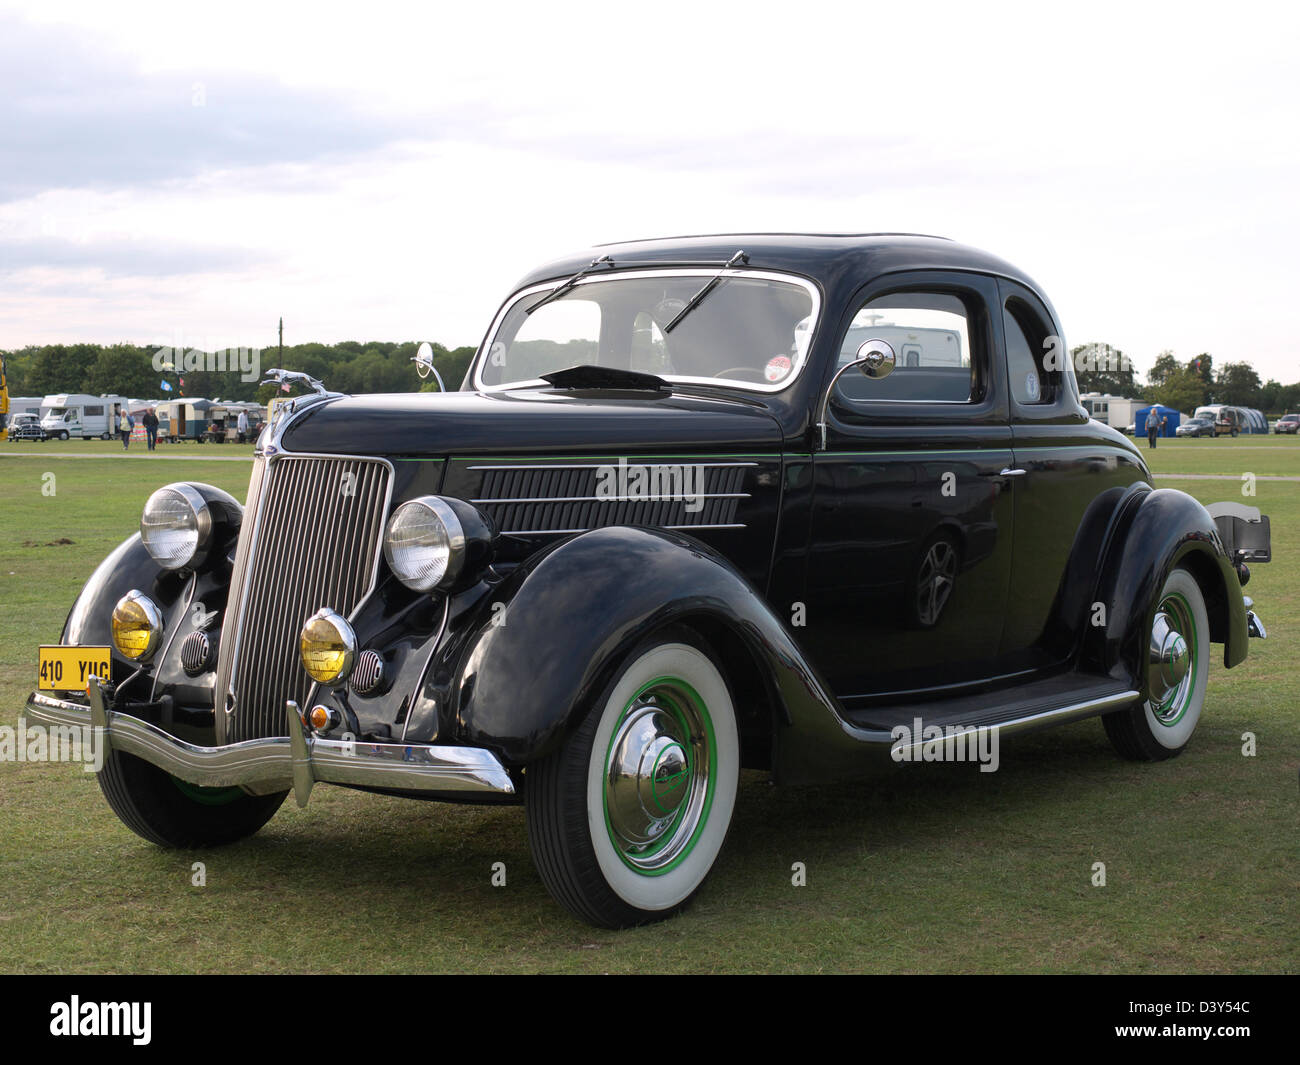 1936 ford v8 classic car at lincolnshire steam and vintage rally stock image